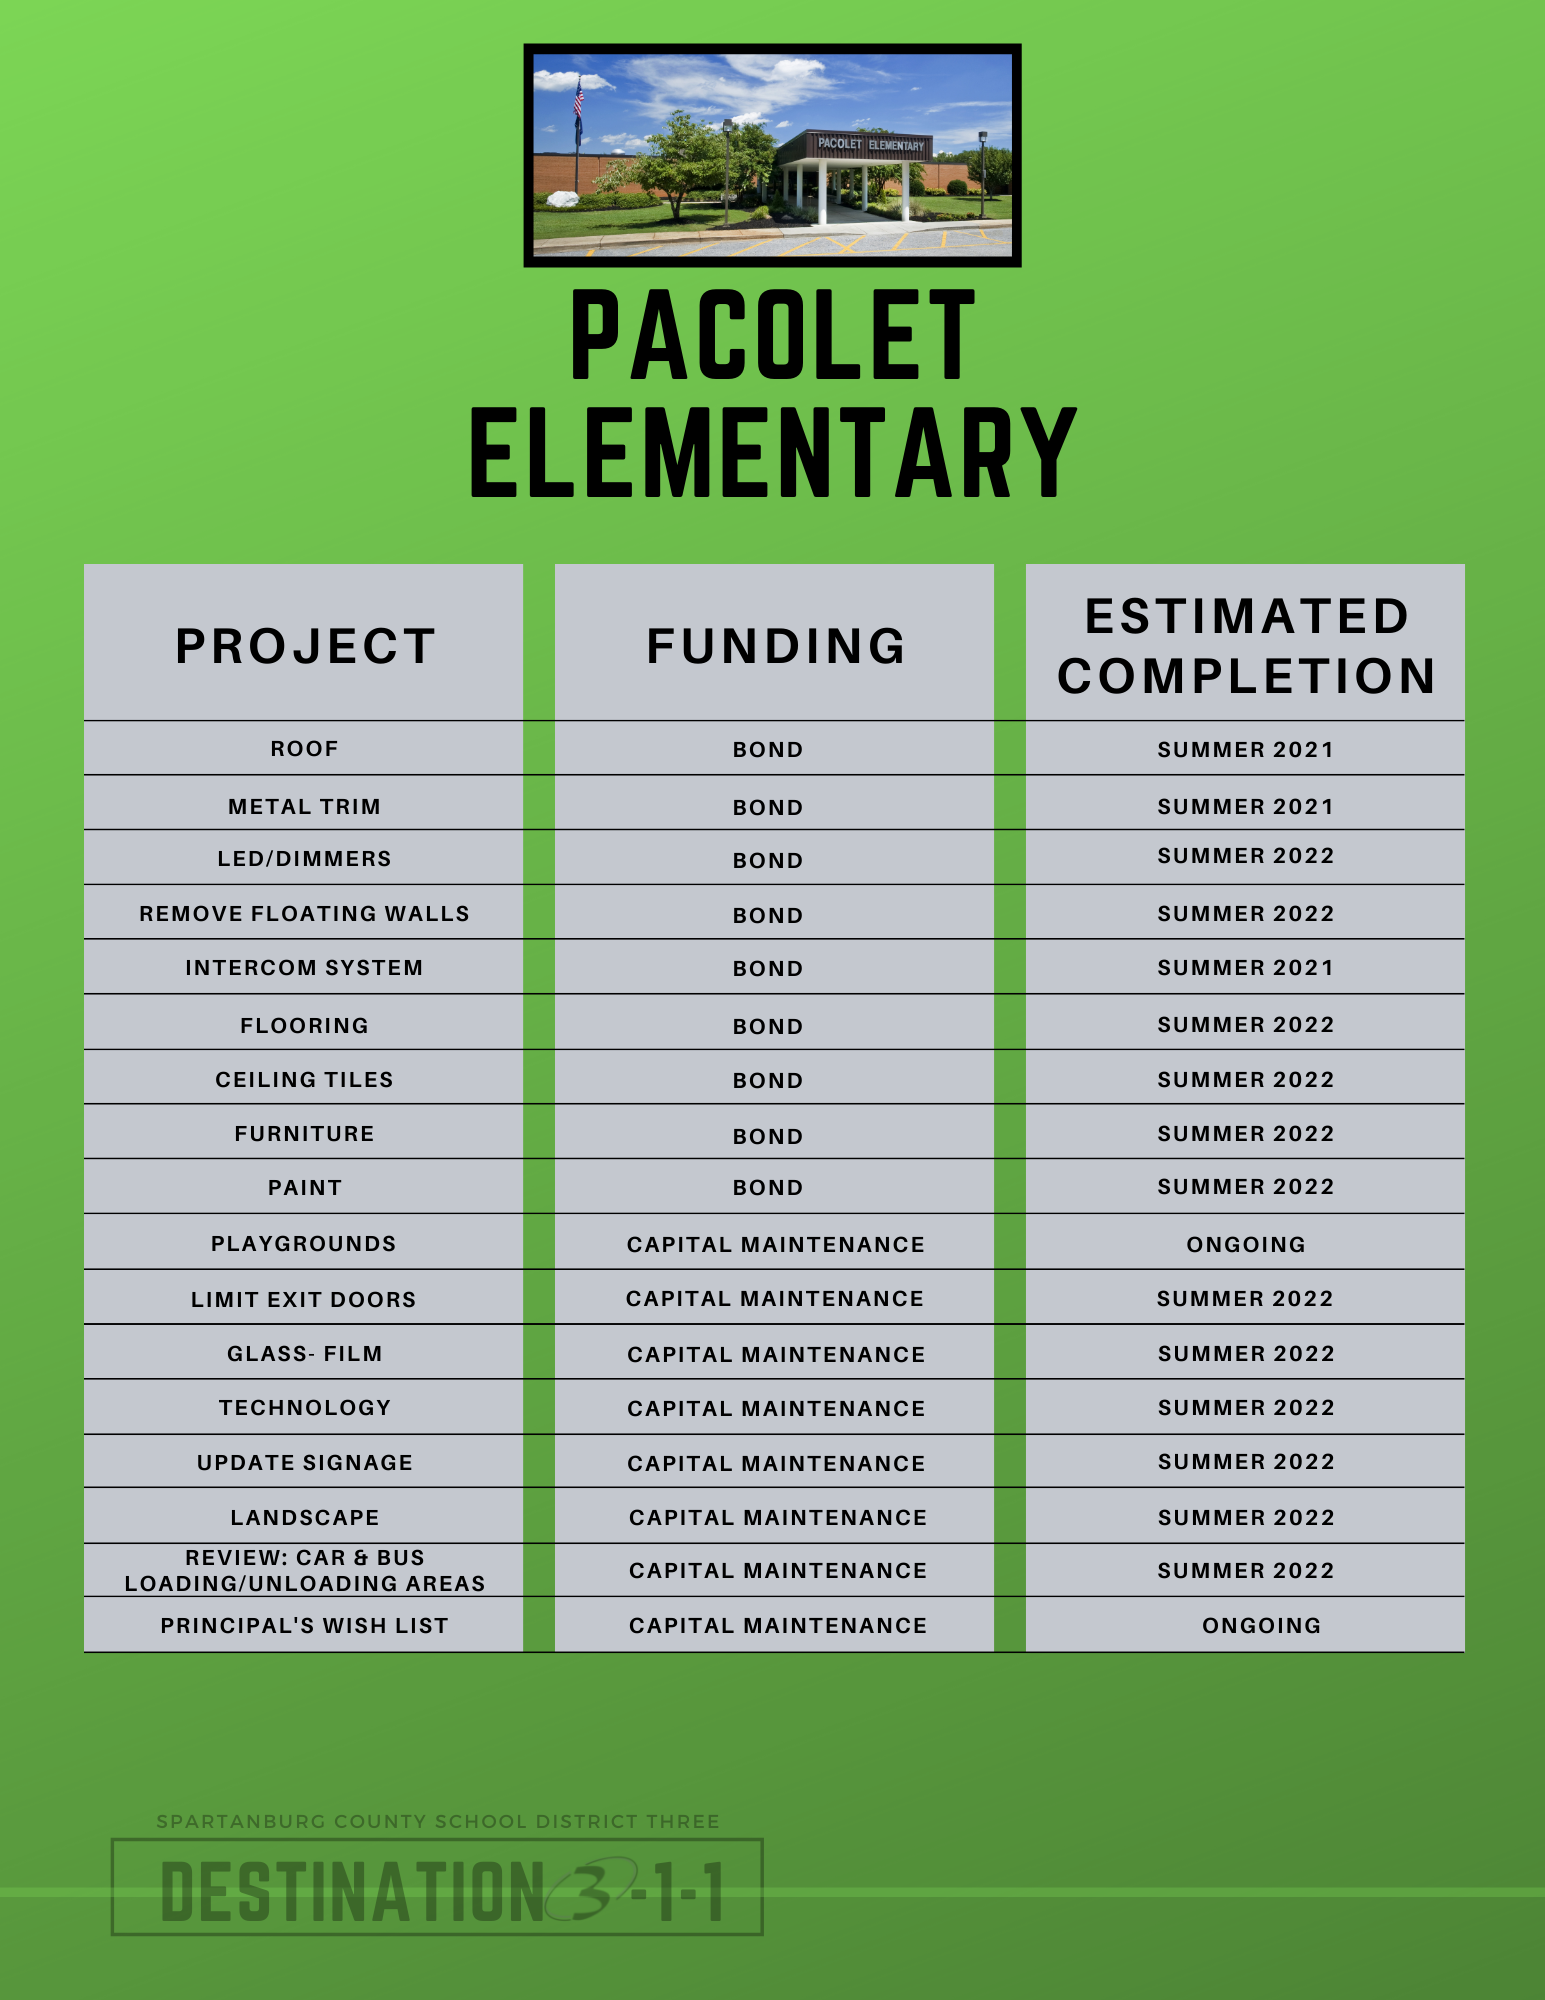 pacolet elementary plans